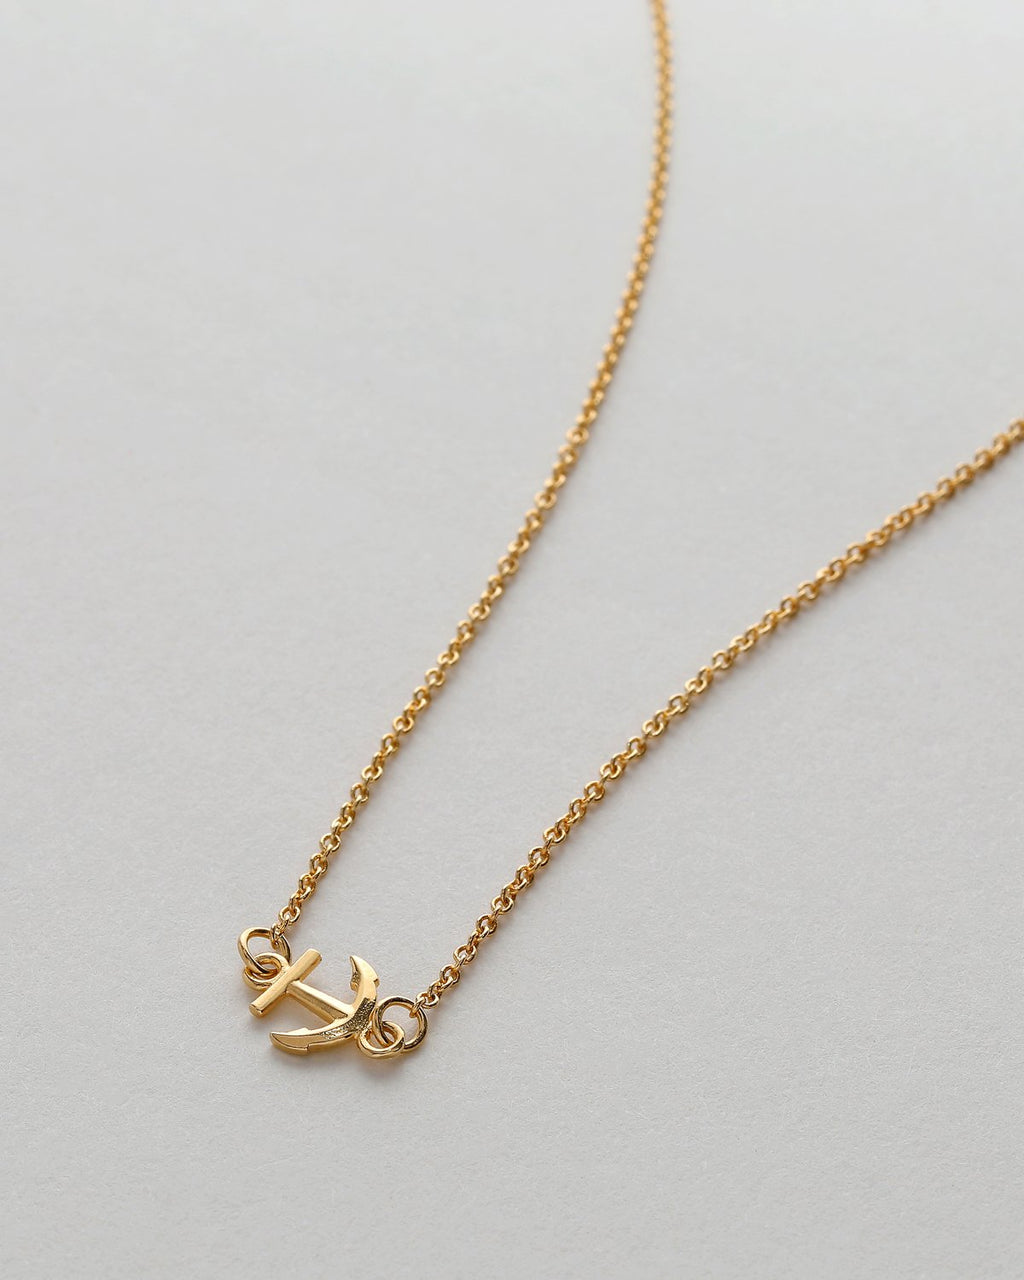 My Anchor Necklace - 14k Gold